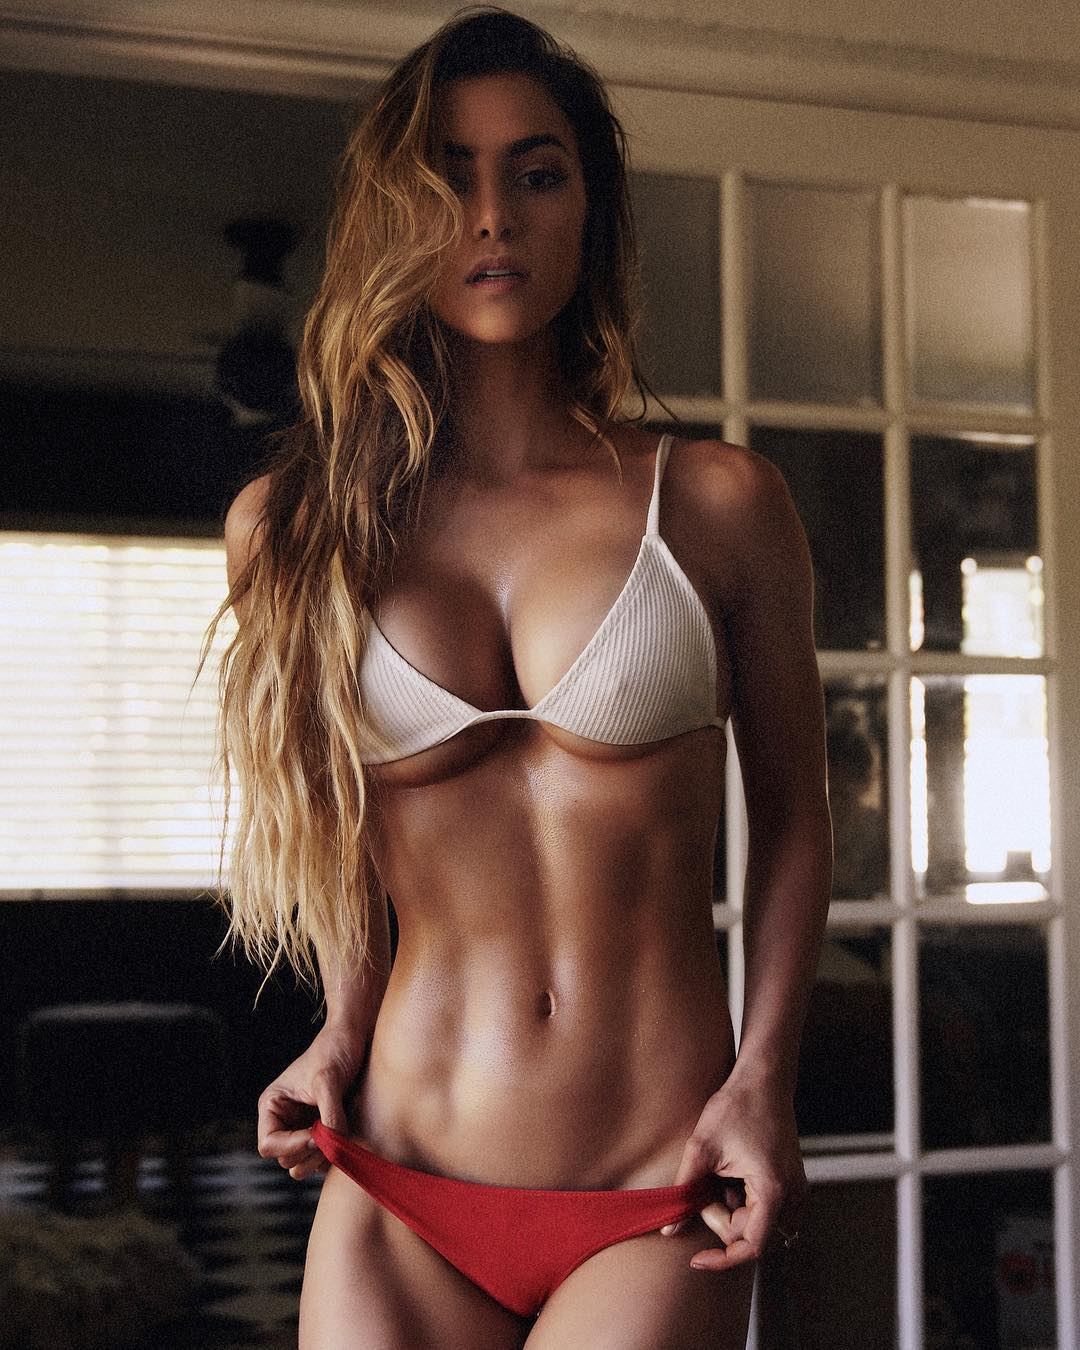 Anllela Sagra - Lovely Fitness Model from Colombia